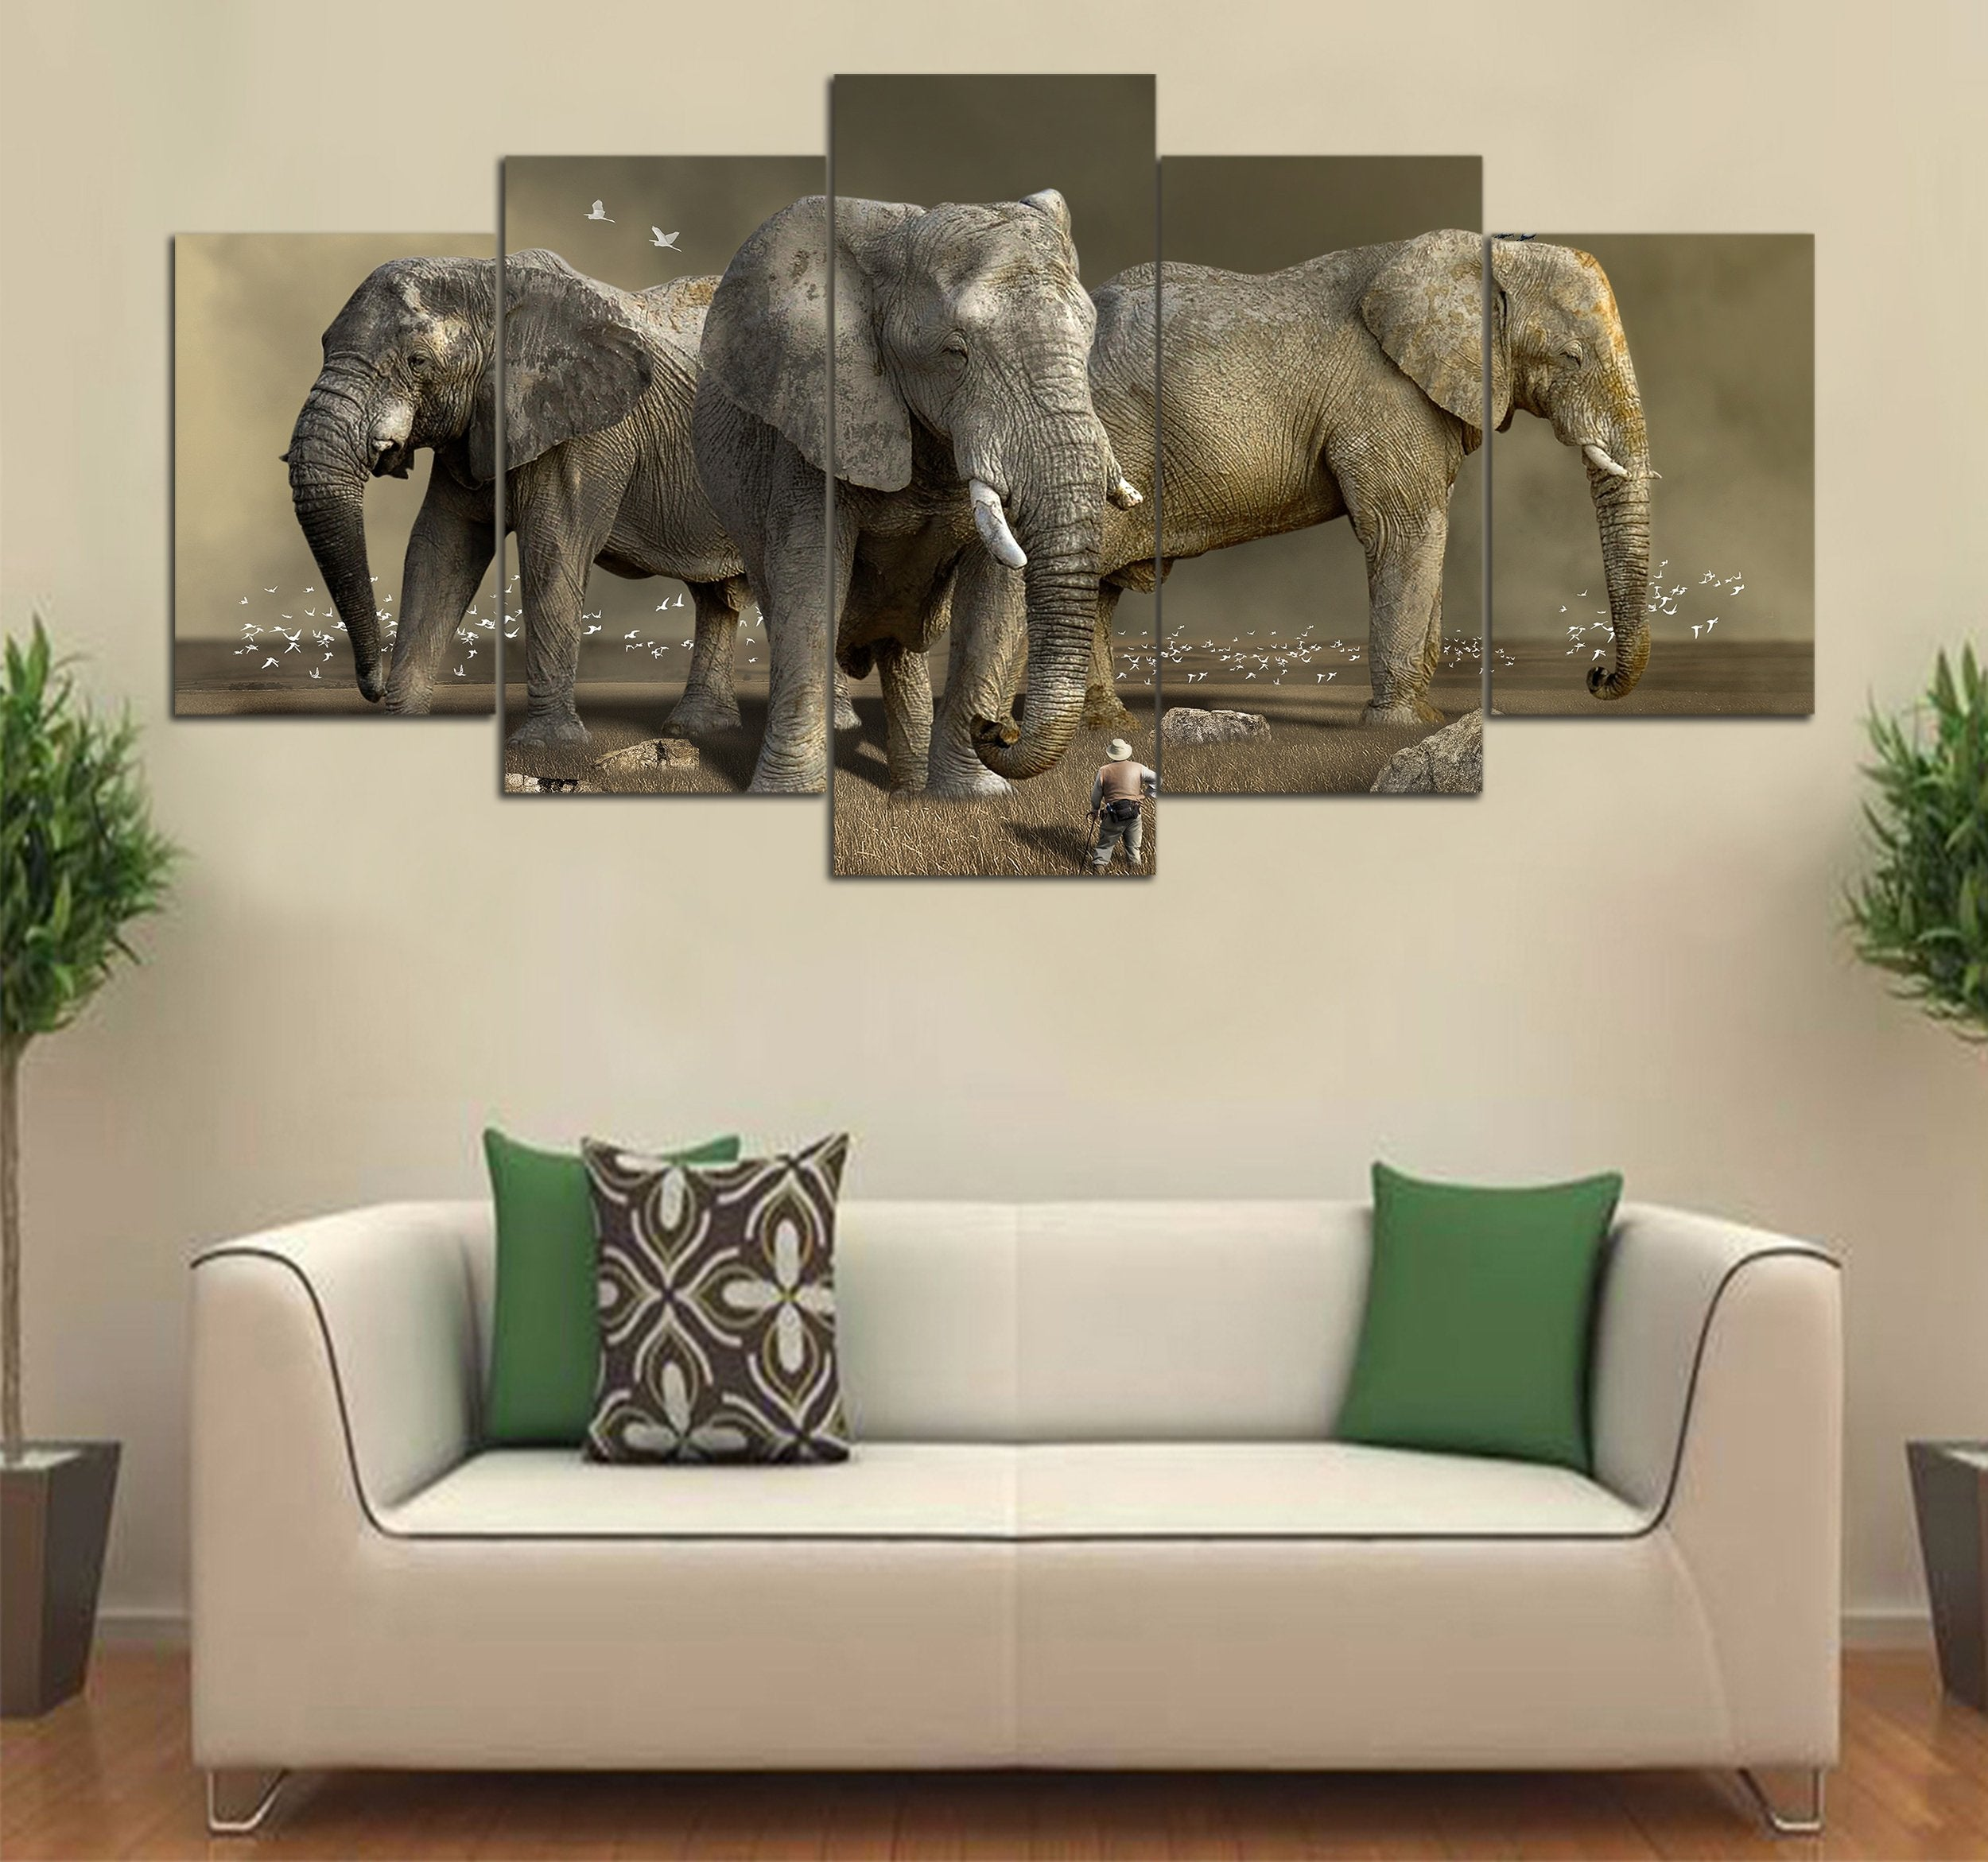 5-piece Elephant printed Canvas Wall Art SMAL120408 - Monkstars Inc.